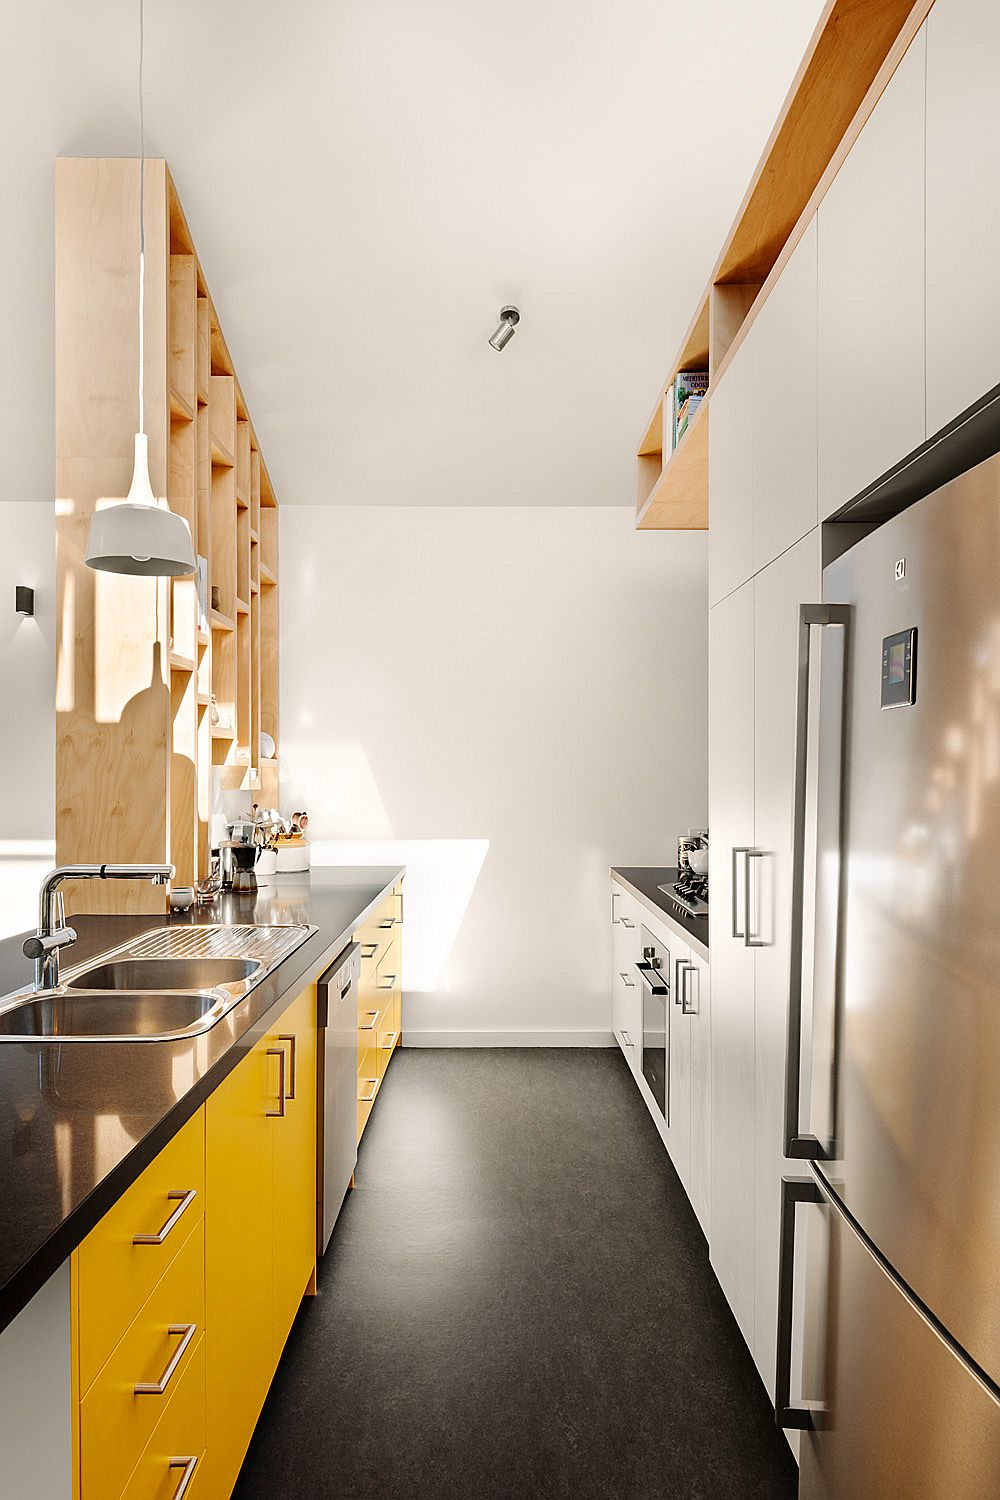 Custom-wooden-shelf-separates-the-living-area-from-the-kitchen